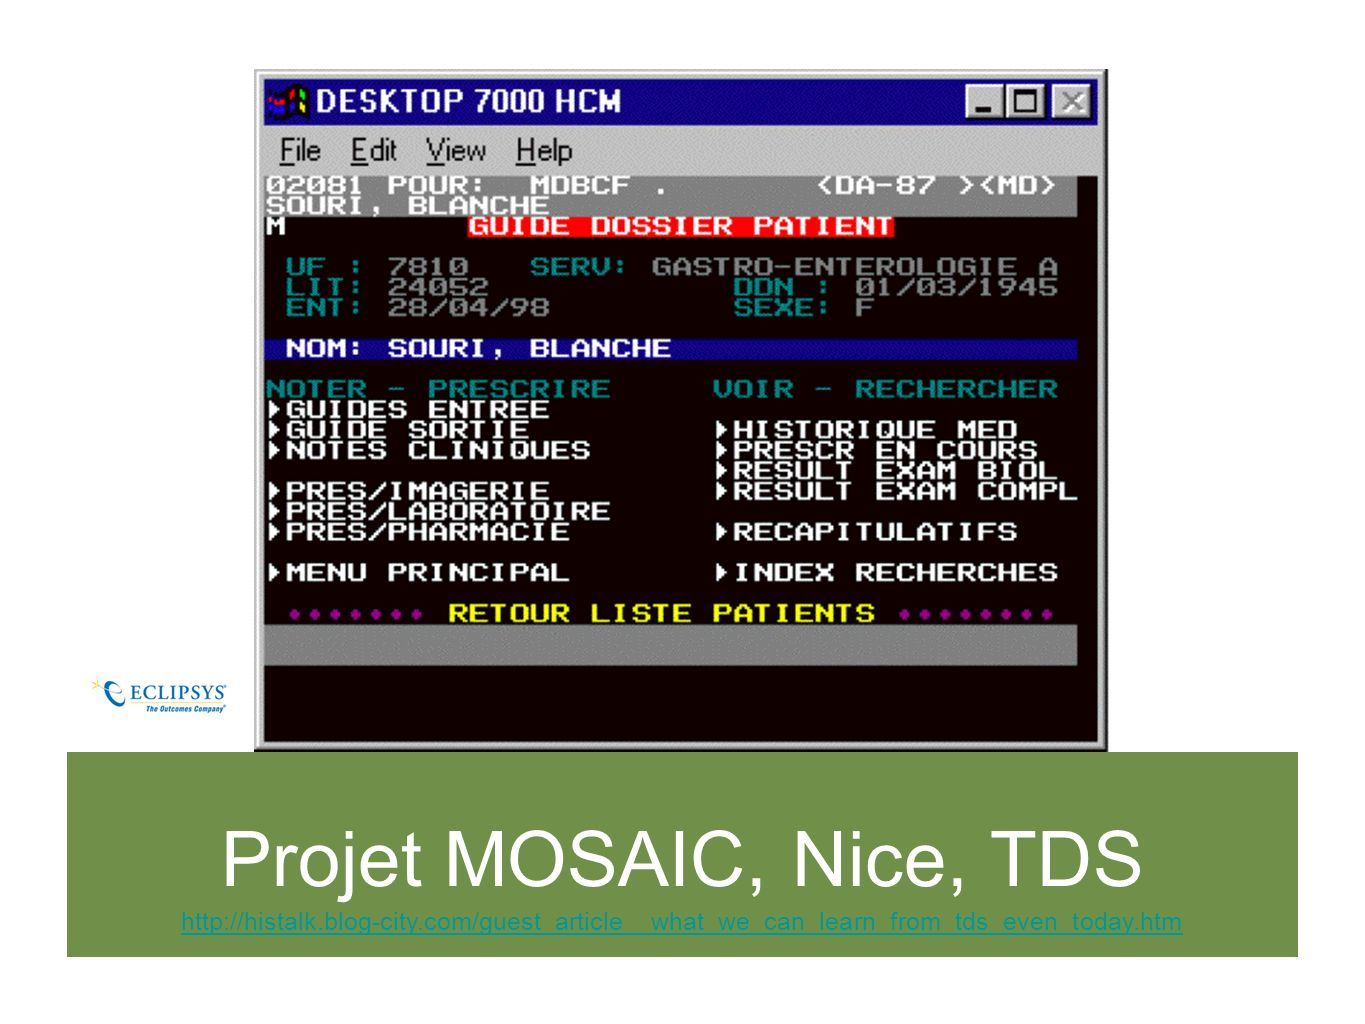 Projet MOSAIC, Nice, TDShttp://histalk.blog-city.com/guest_article__what_we_can_learn_from_tds_even_today.htm.